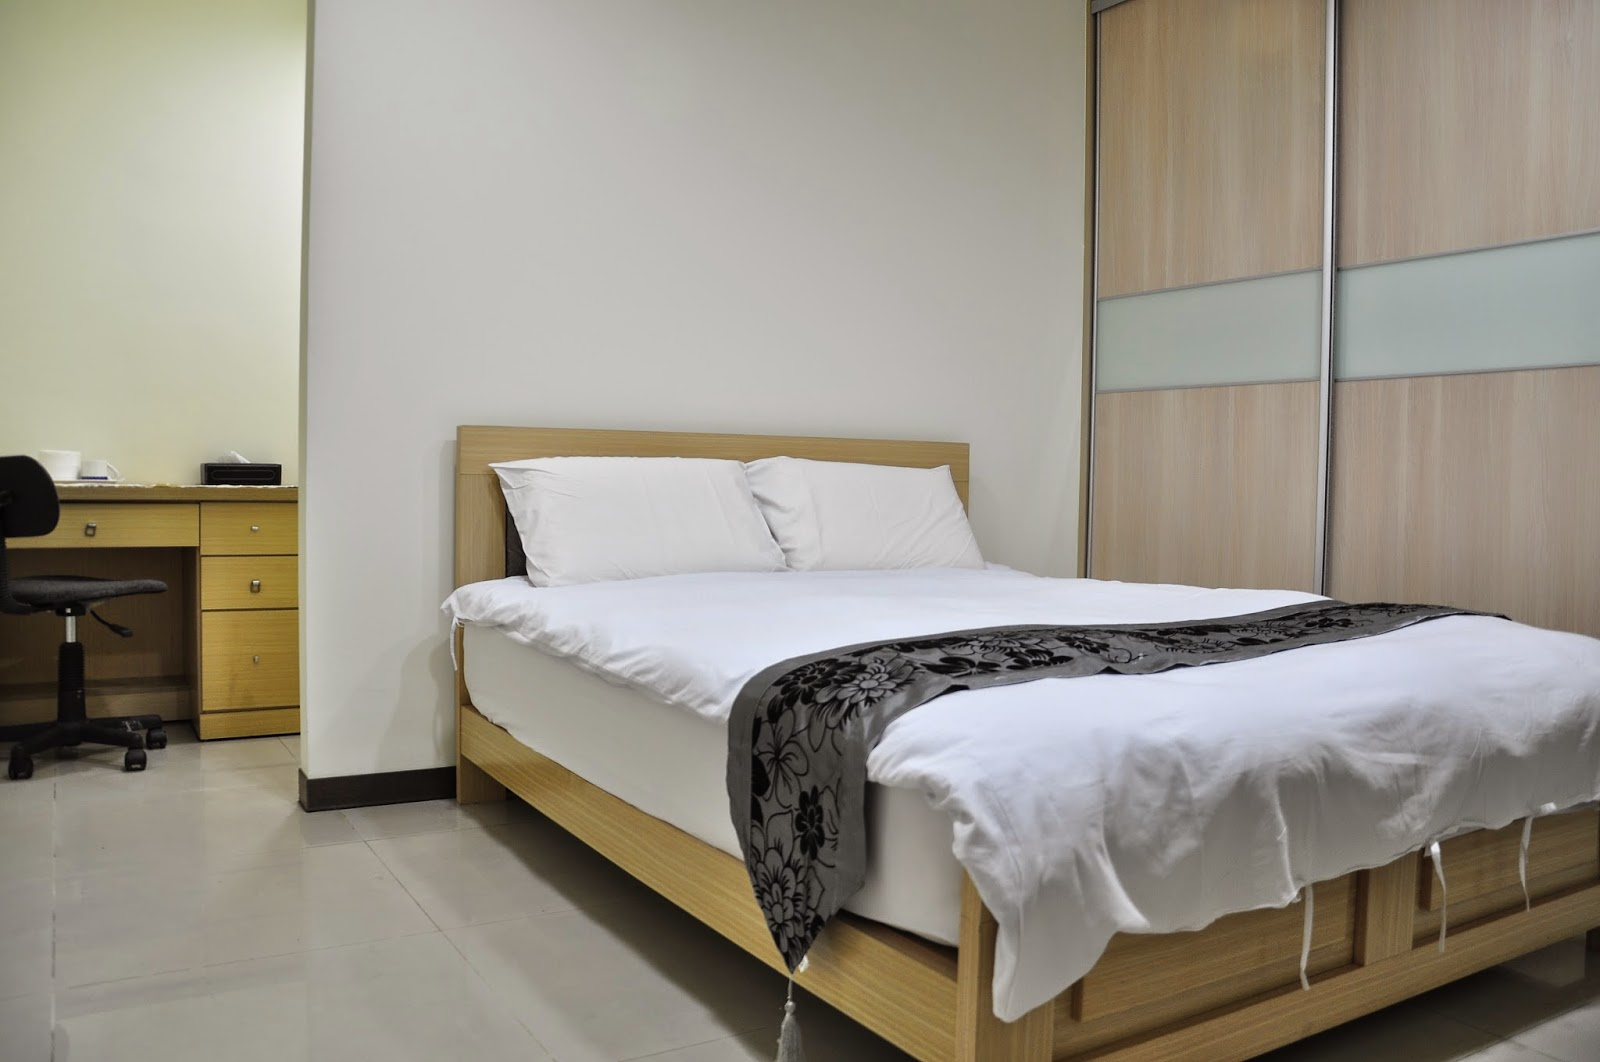 Rental Taipei Li Xiang HostelGuting Annex Cozy B Double Room - Rooms for rent with private bathroom